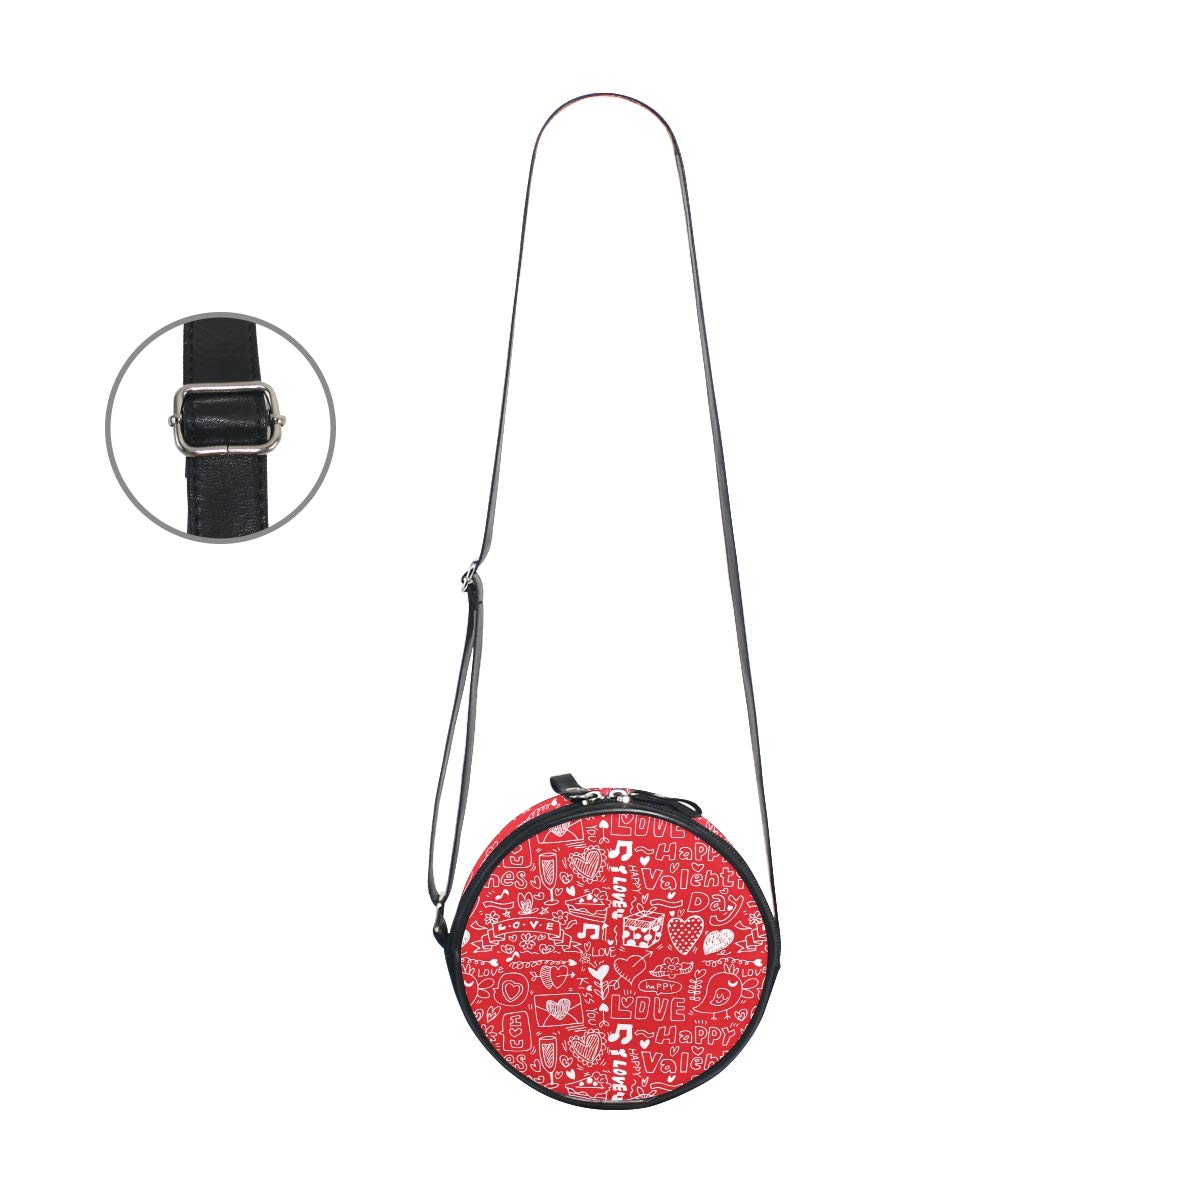 Seamless Valentines Day Pattern Super Cute Design Small Canvas Messenger Bags Shoulder Bag Round Crossbody Bags Purses for Little Girls Gifts